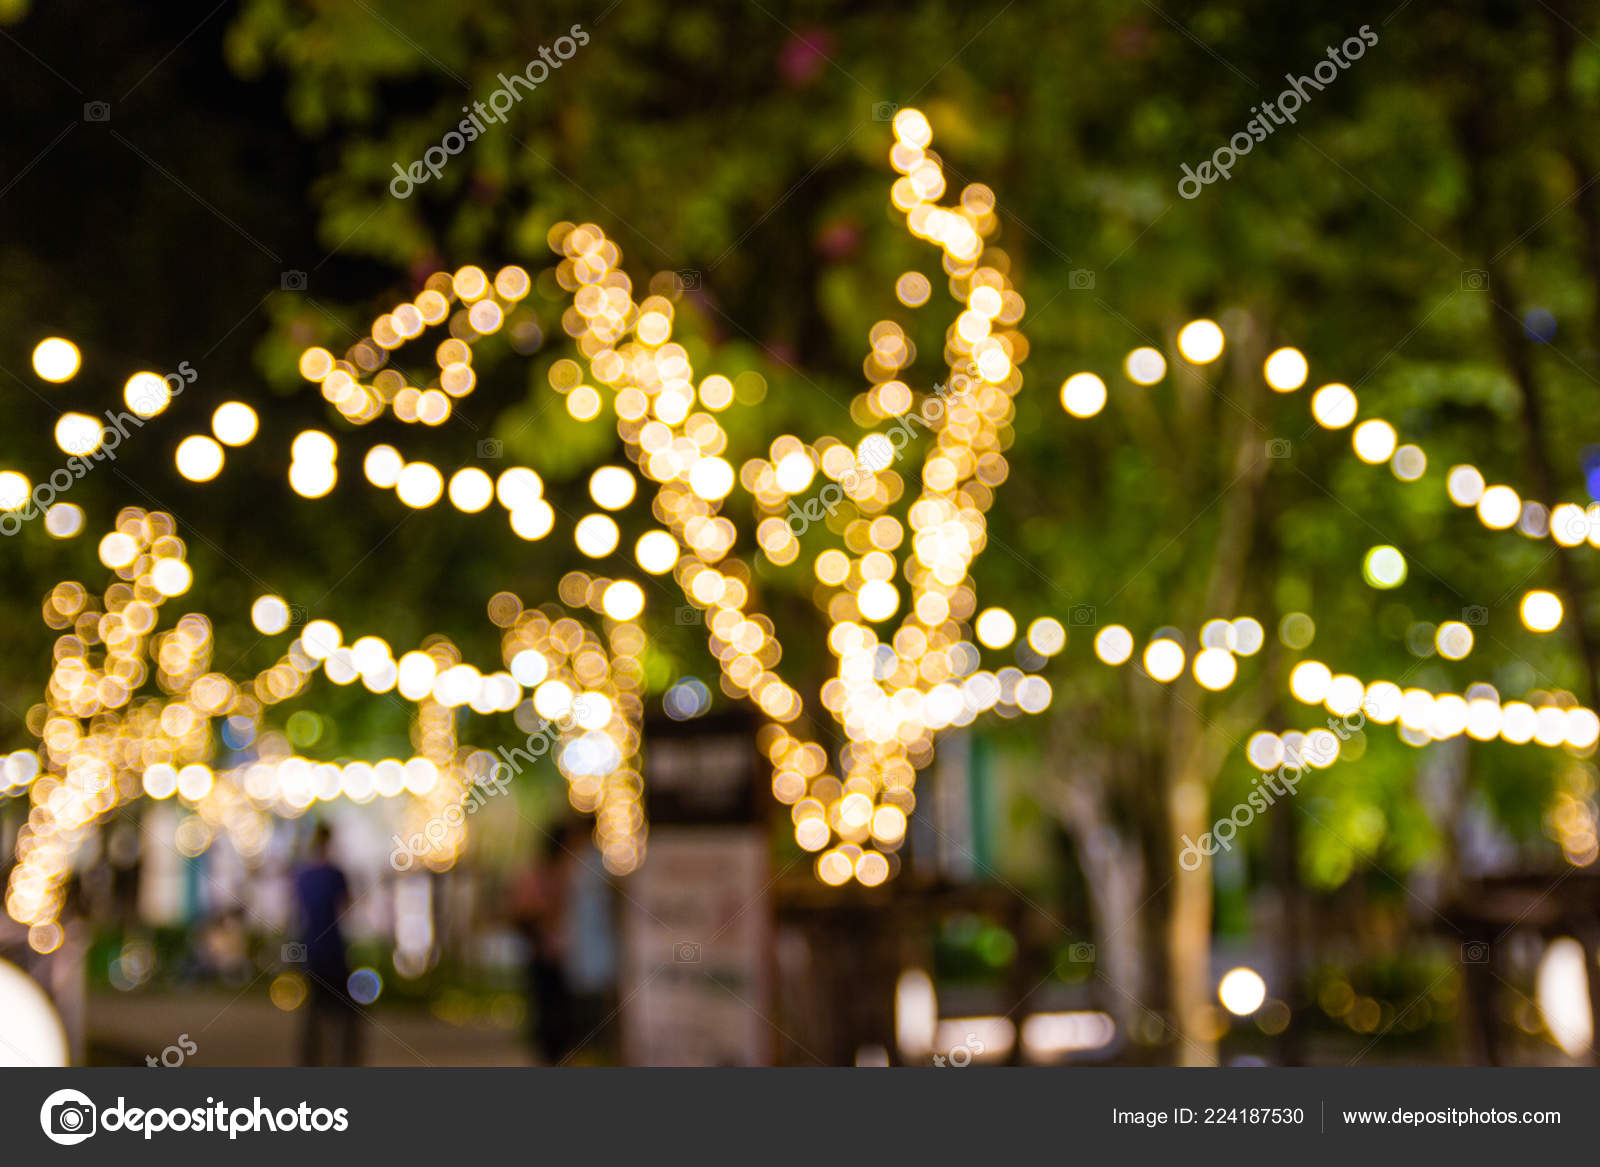 Blurred image with bokeh, Decorative outdoor string lights hanging on tree in the garden at night time - decorative Christmas and Happy New Year — Photo by ...